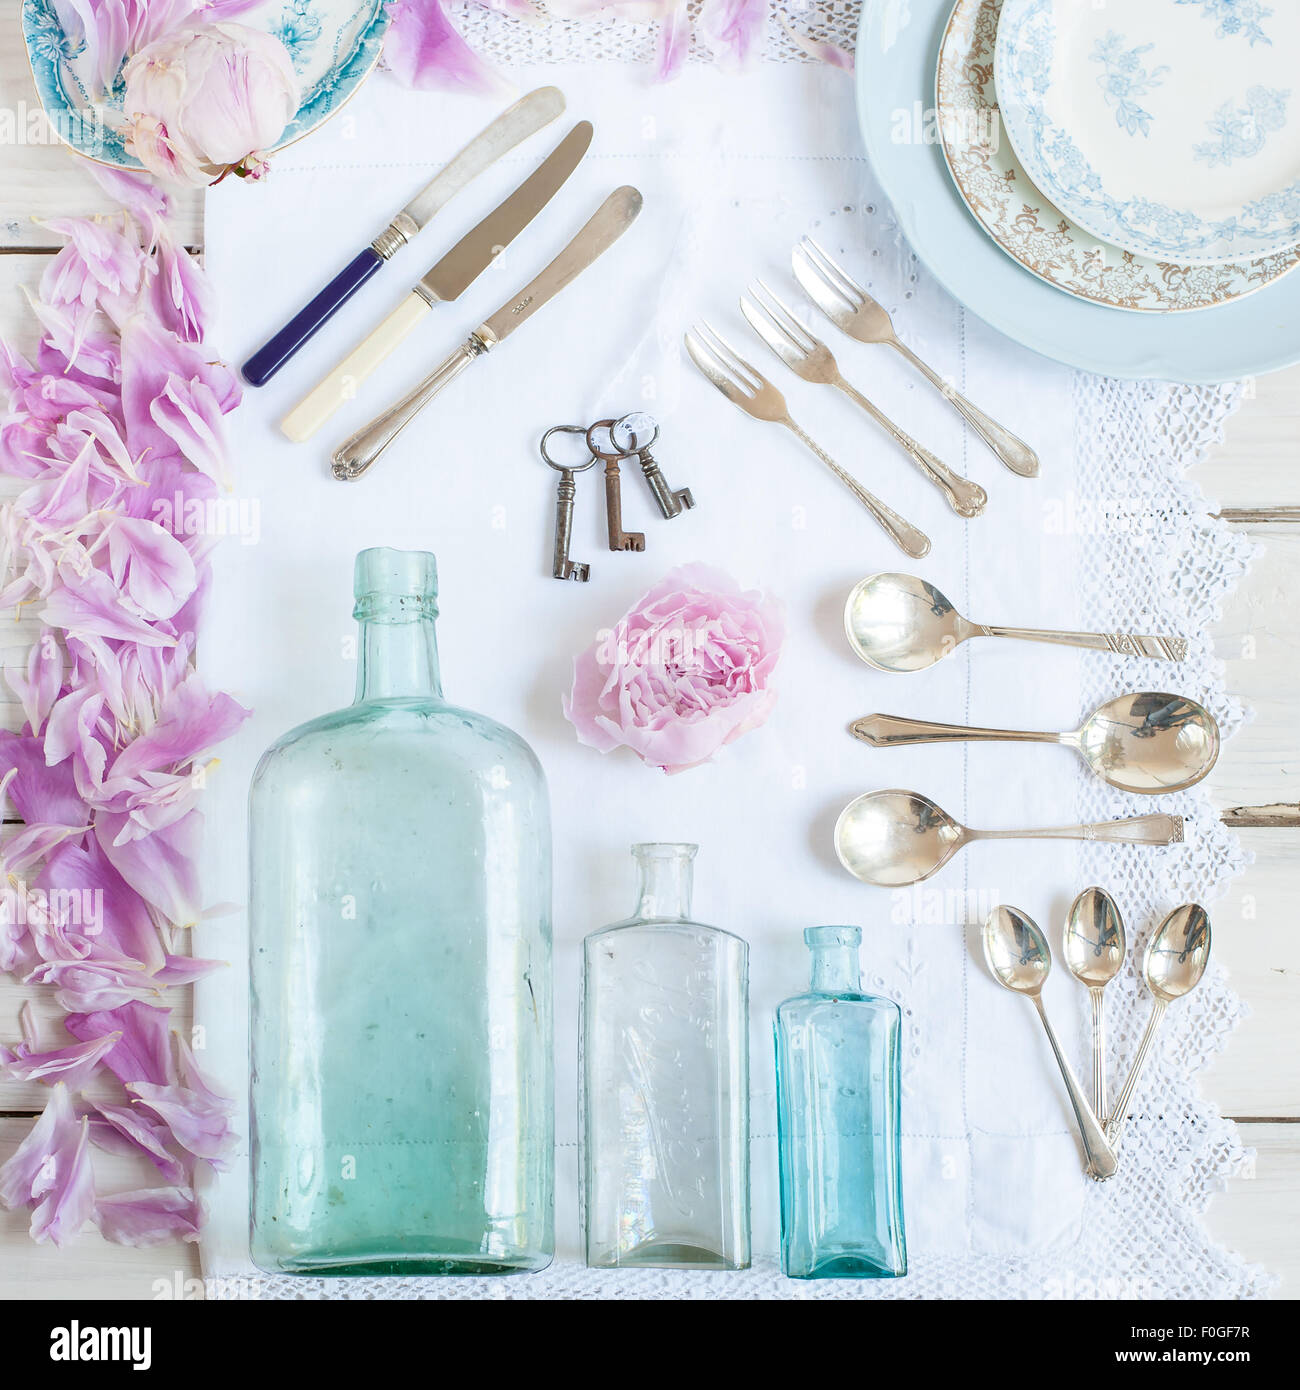 a collection of vintage bottles,  cutlery, plates, old keys, and peonies - Stock Image